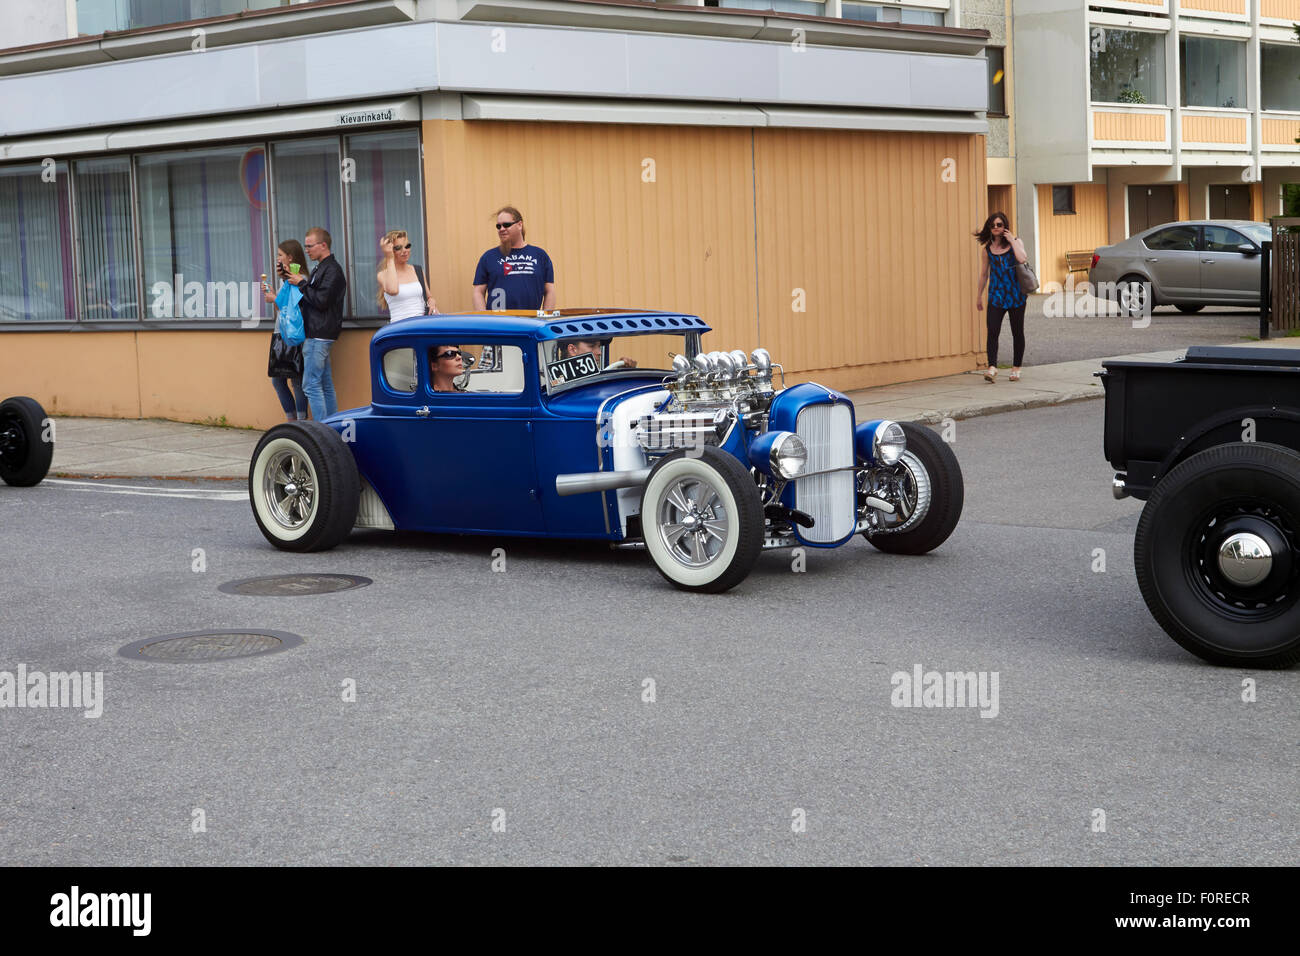 1930 Ford Model A Coupe Hot Rod Stock Photo: 86568071 - Alamy